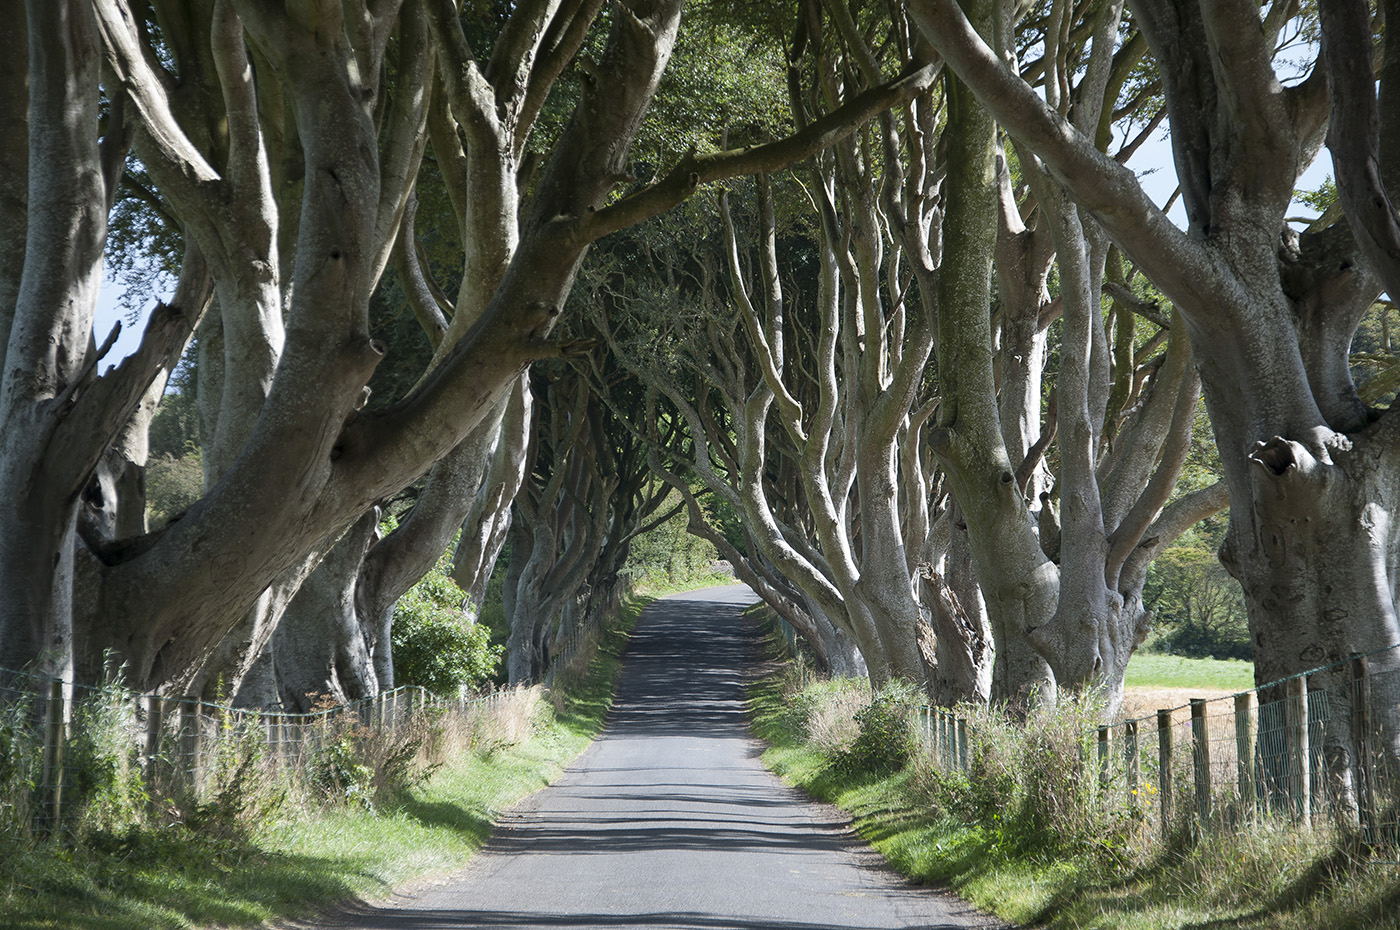 The Dark Hedges, Gracehill, Co Antrim